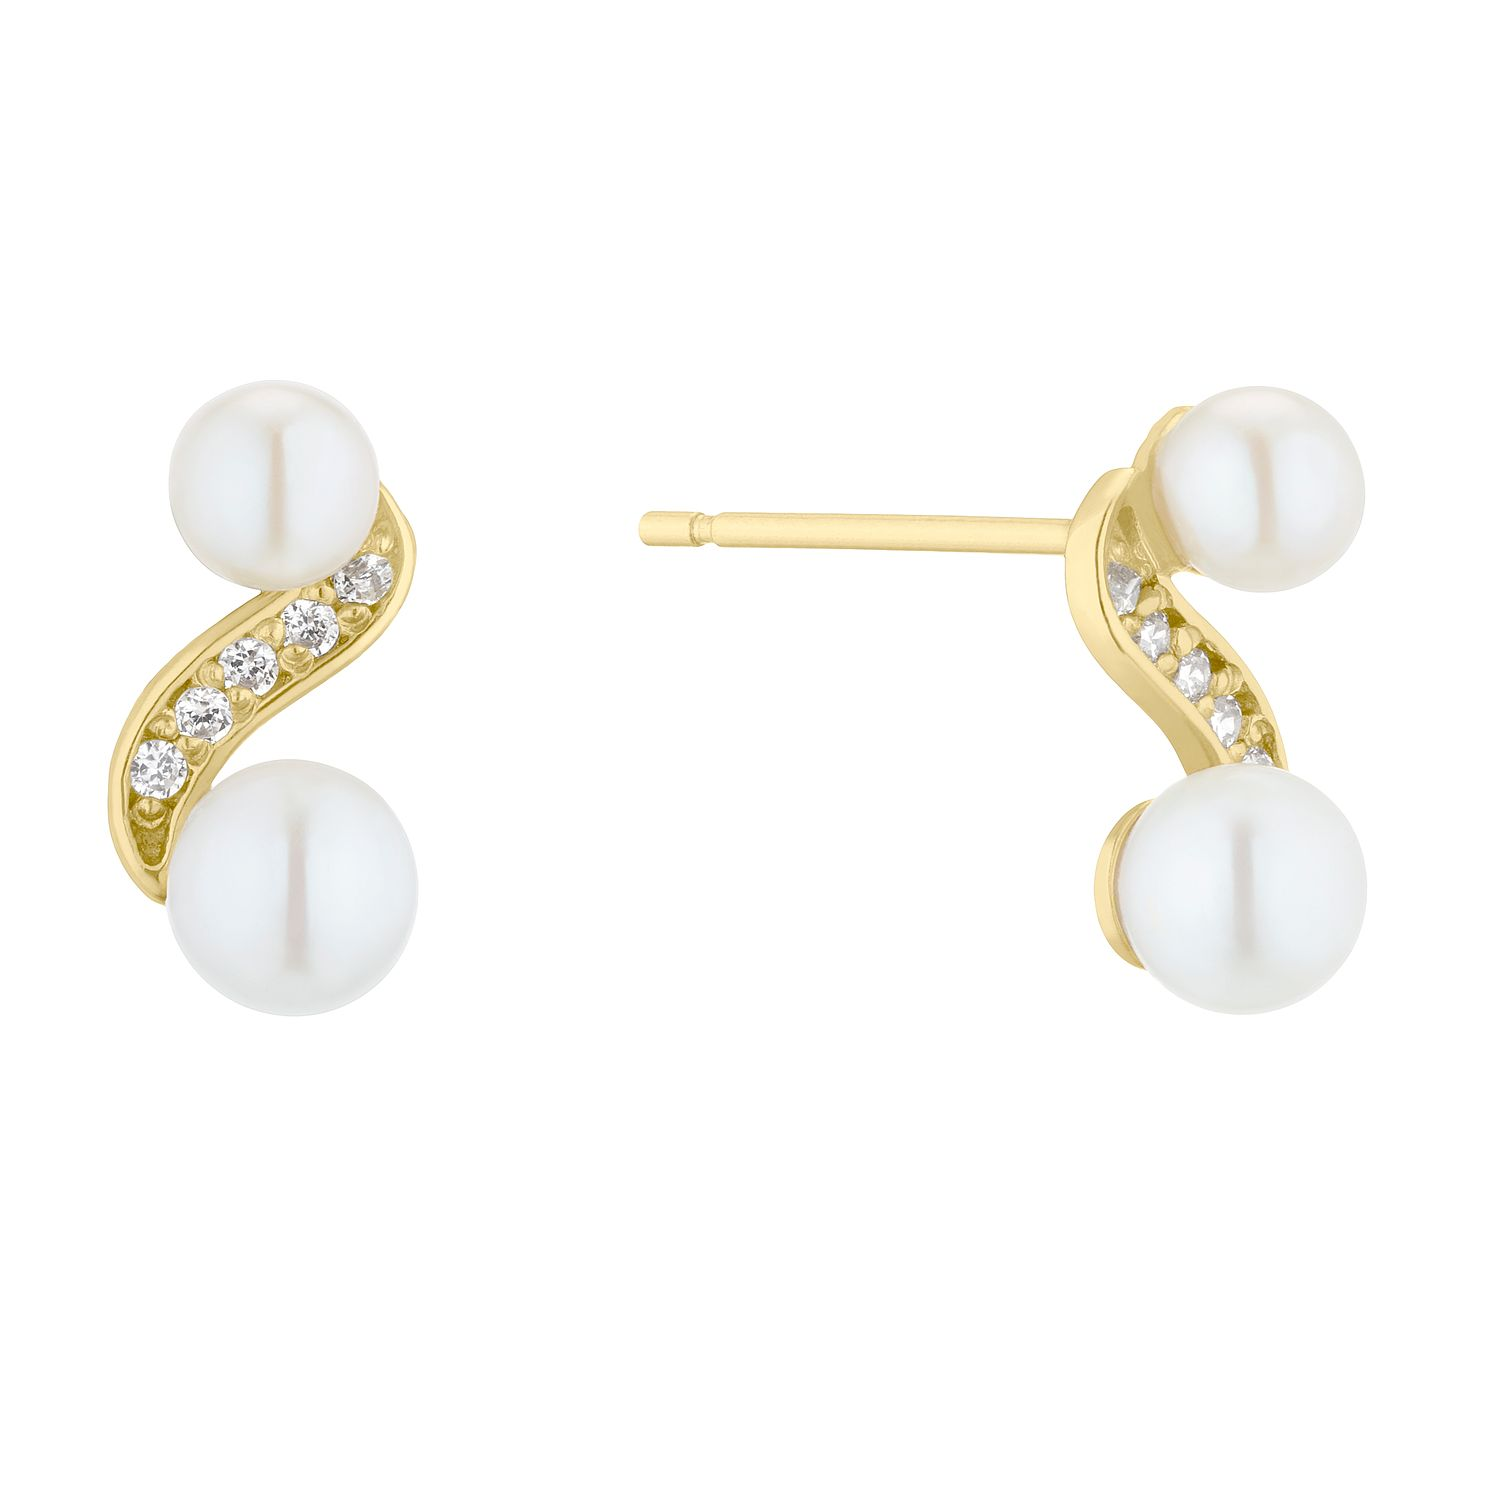 9ct Gold Cultured Freshwater Pearl & Cubic Zirconia Earrings - Product number 5849519